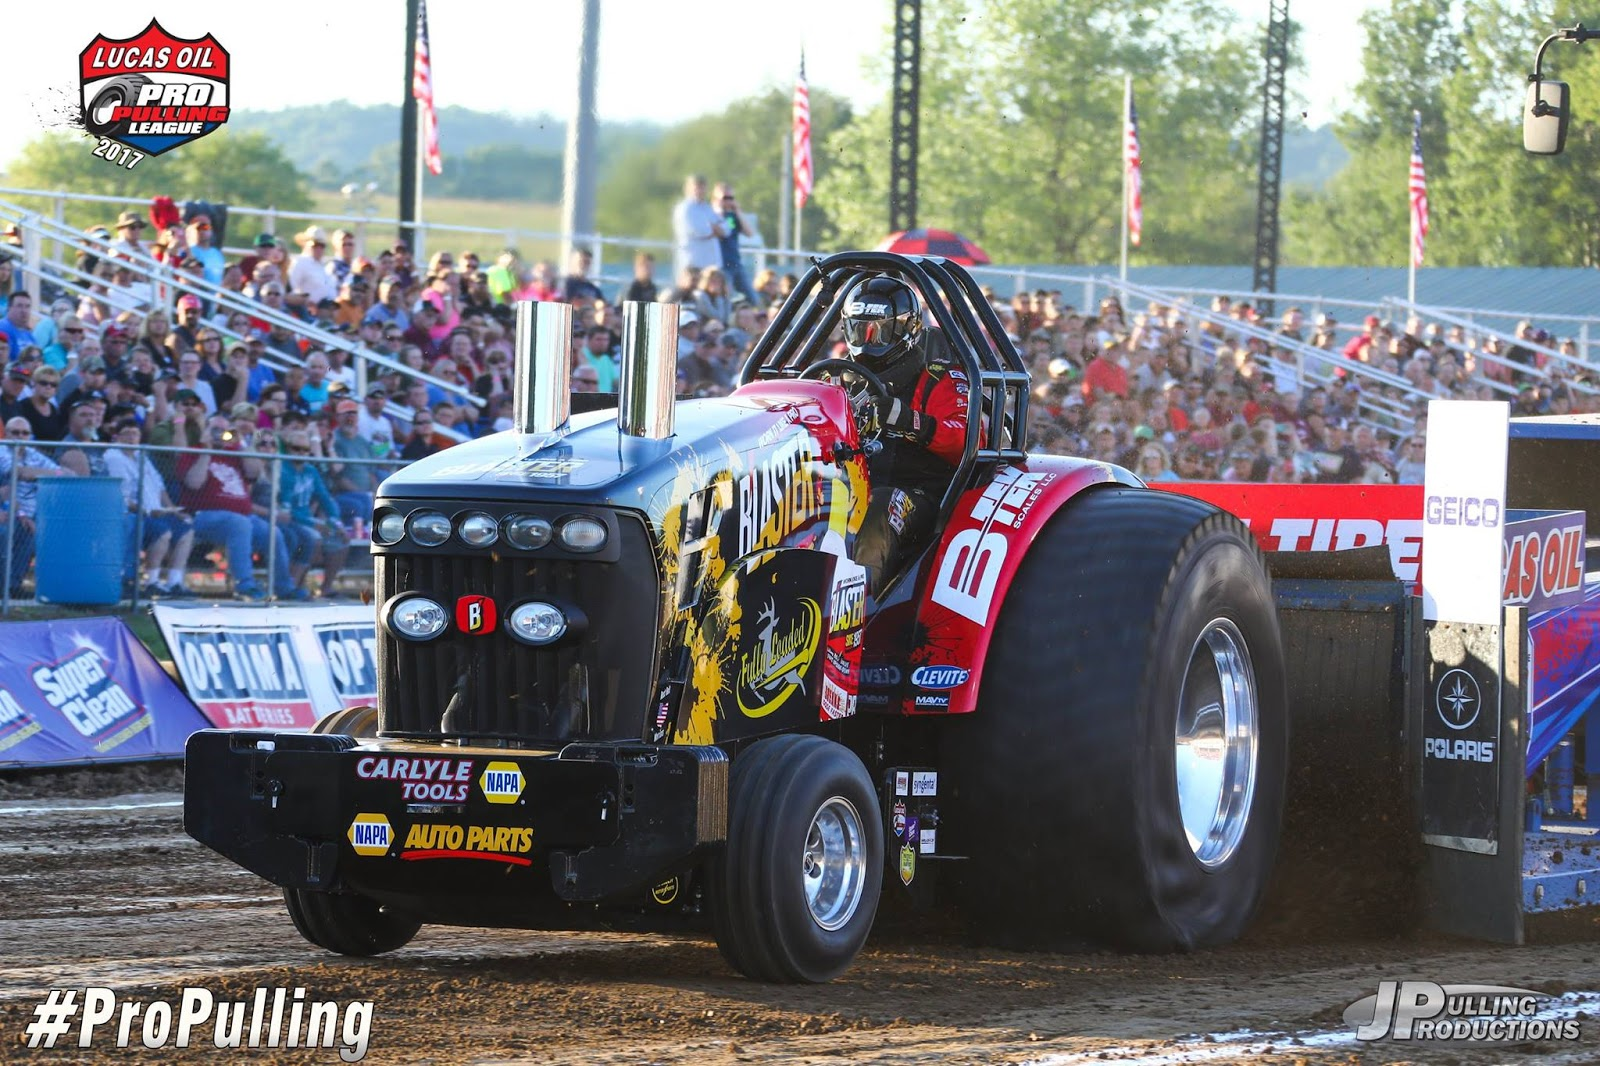 Tractor Pulling News - Pullingworld com: Q & A with Jeff Hothem